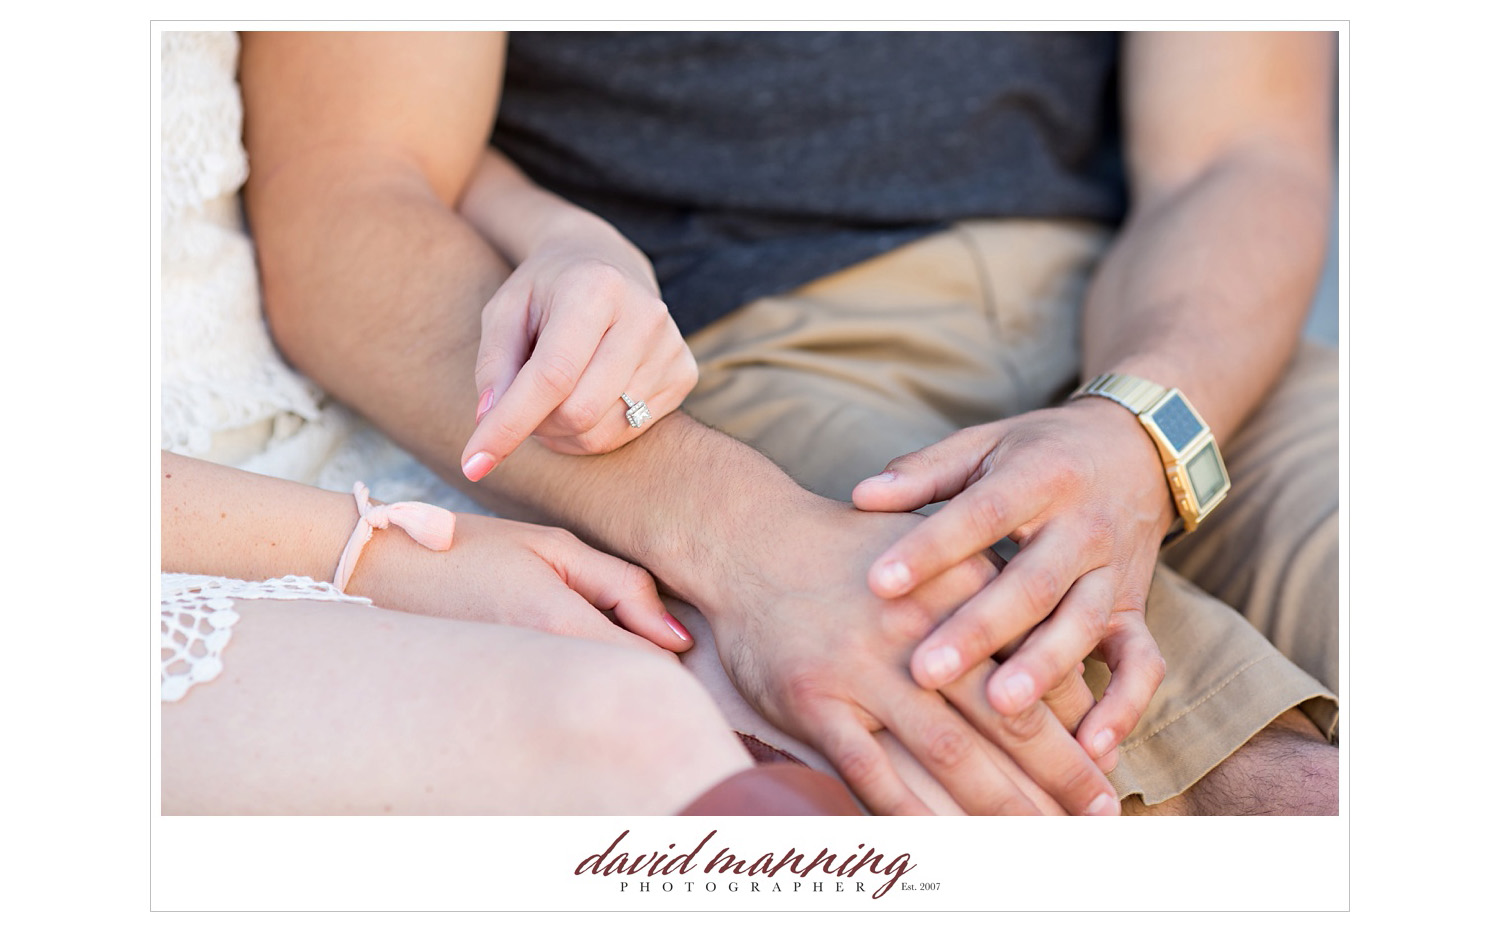 Encinitas-Engagement-Photos-San-Diego-David-Manning_0008.jpg